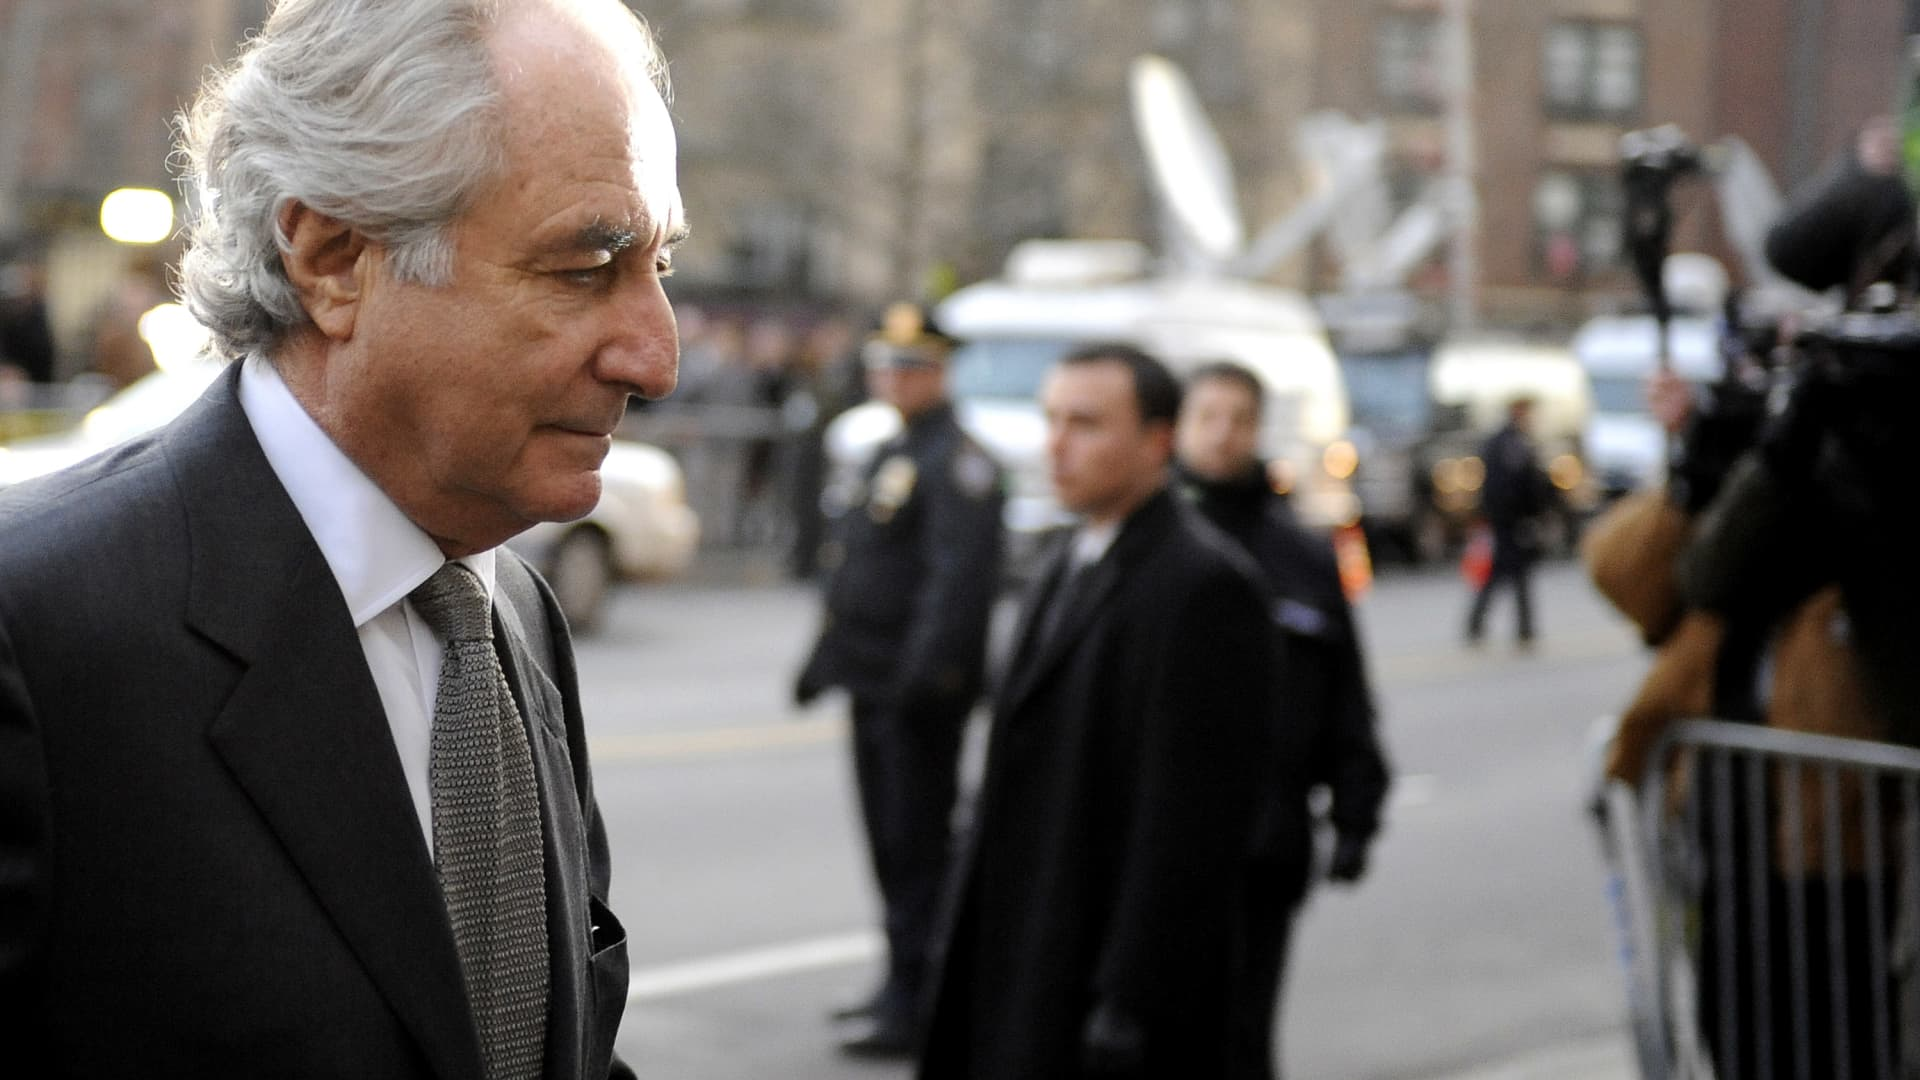 Bernard Madoff arrives at Manhattan Federal court on March 12, 2009 in New York City.